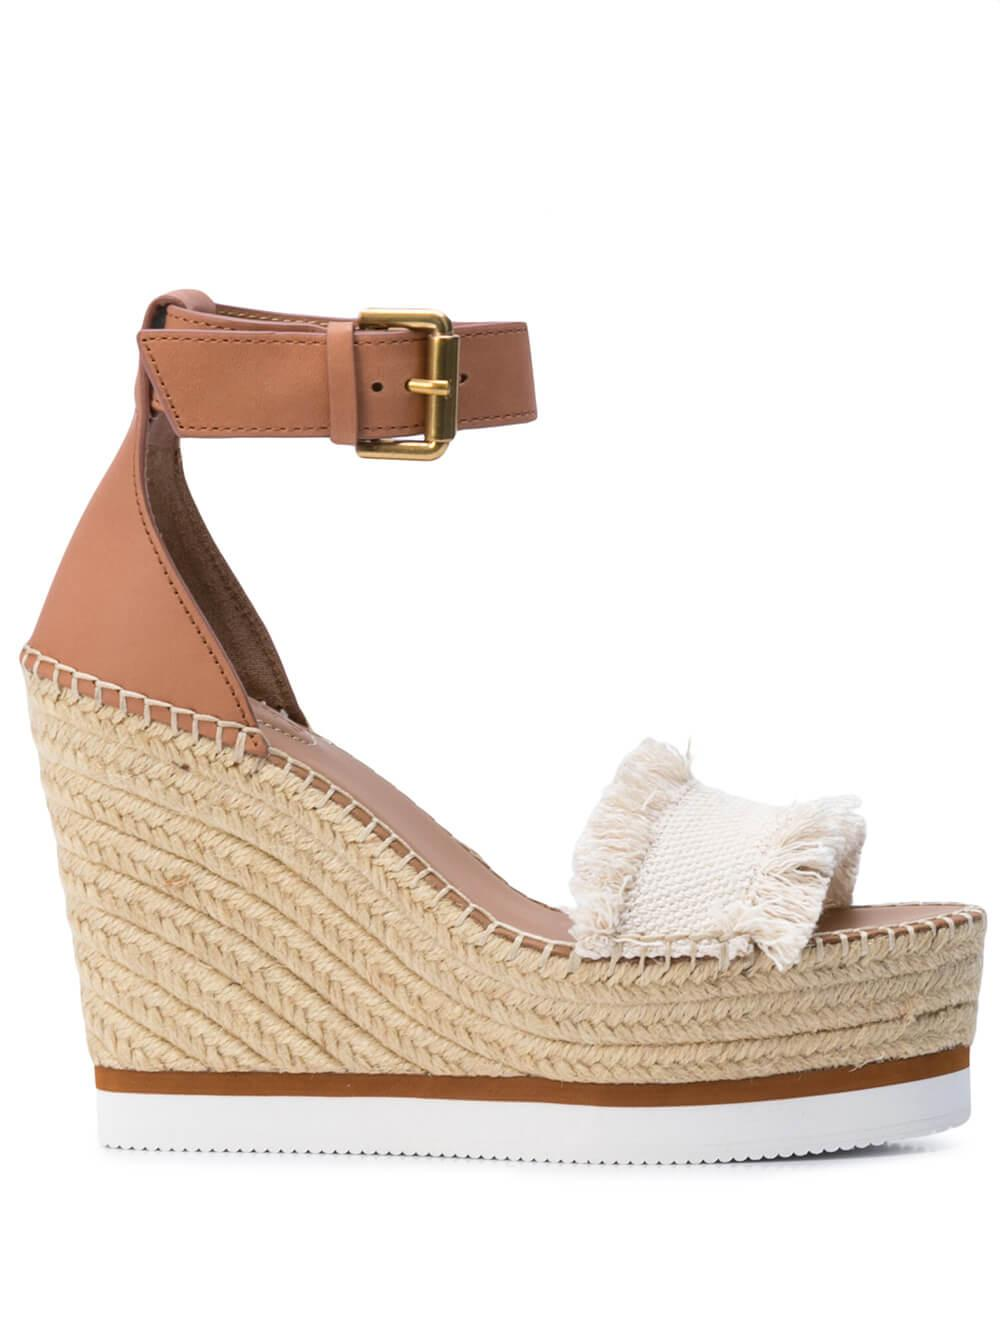 Leather Wedge With Ankle Strap Item # SB26152-R20